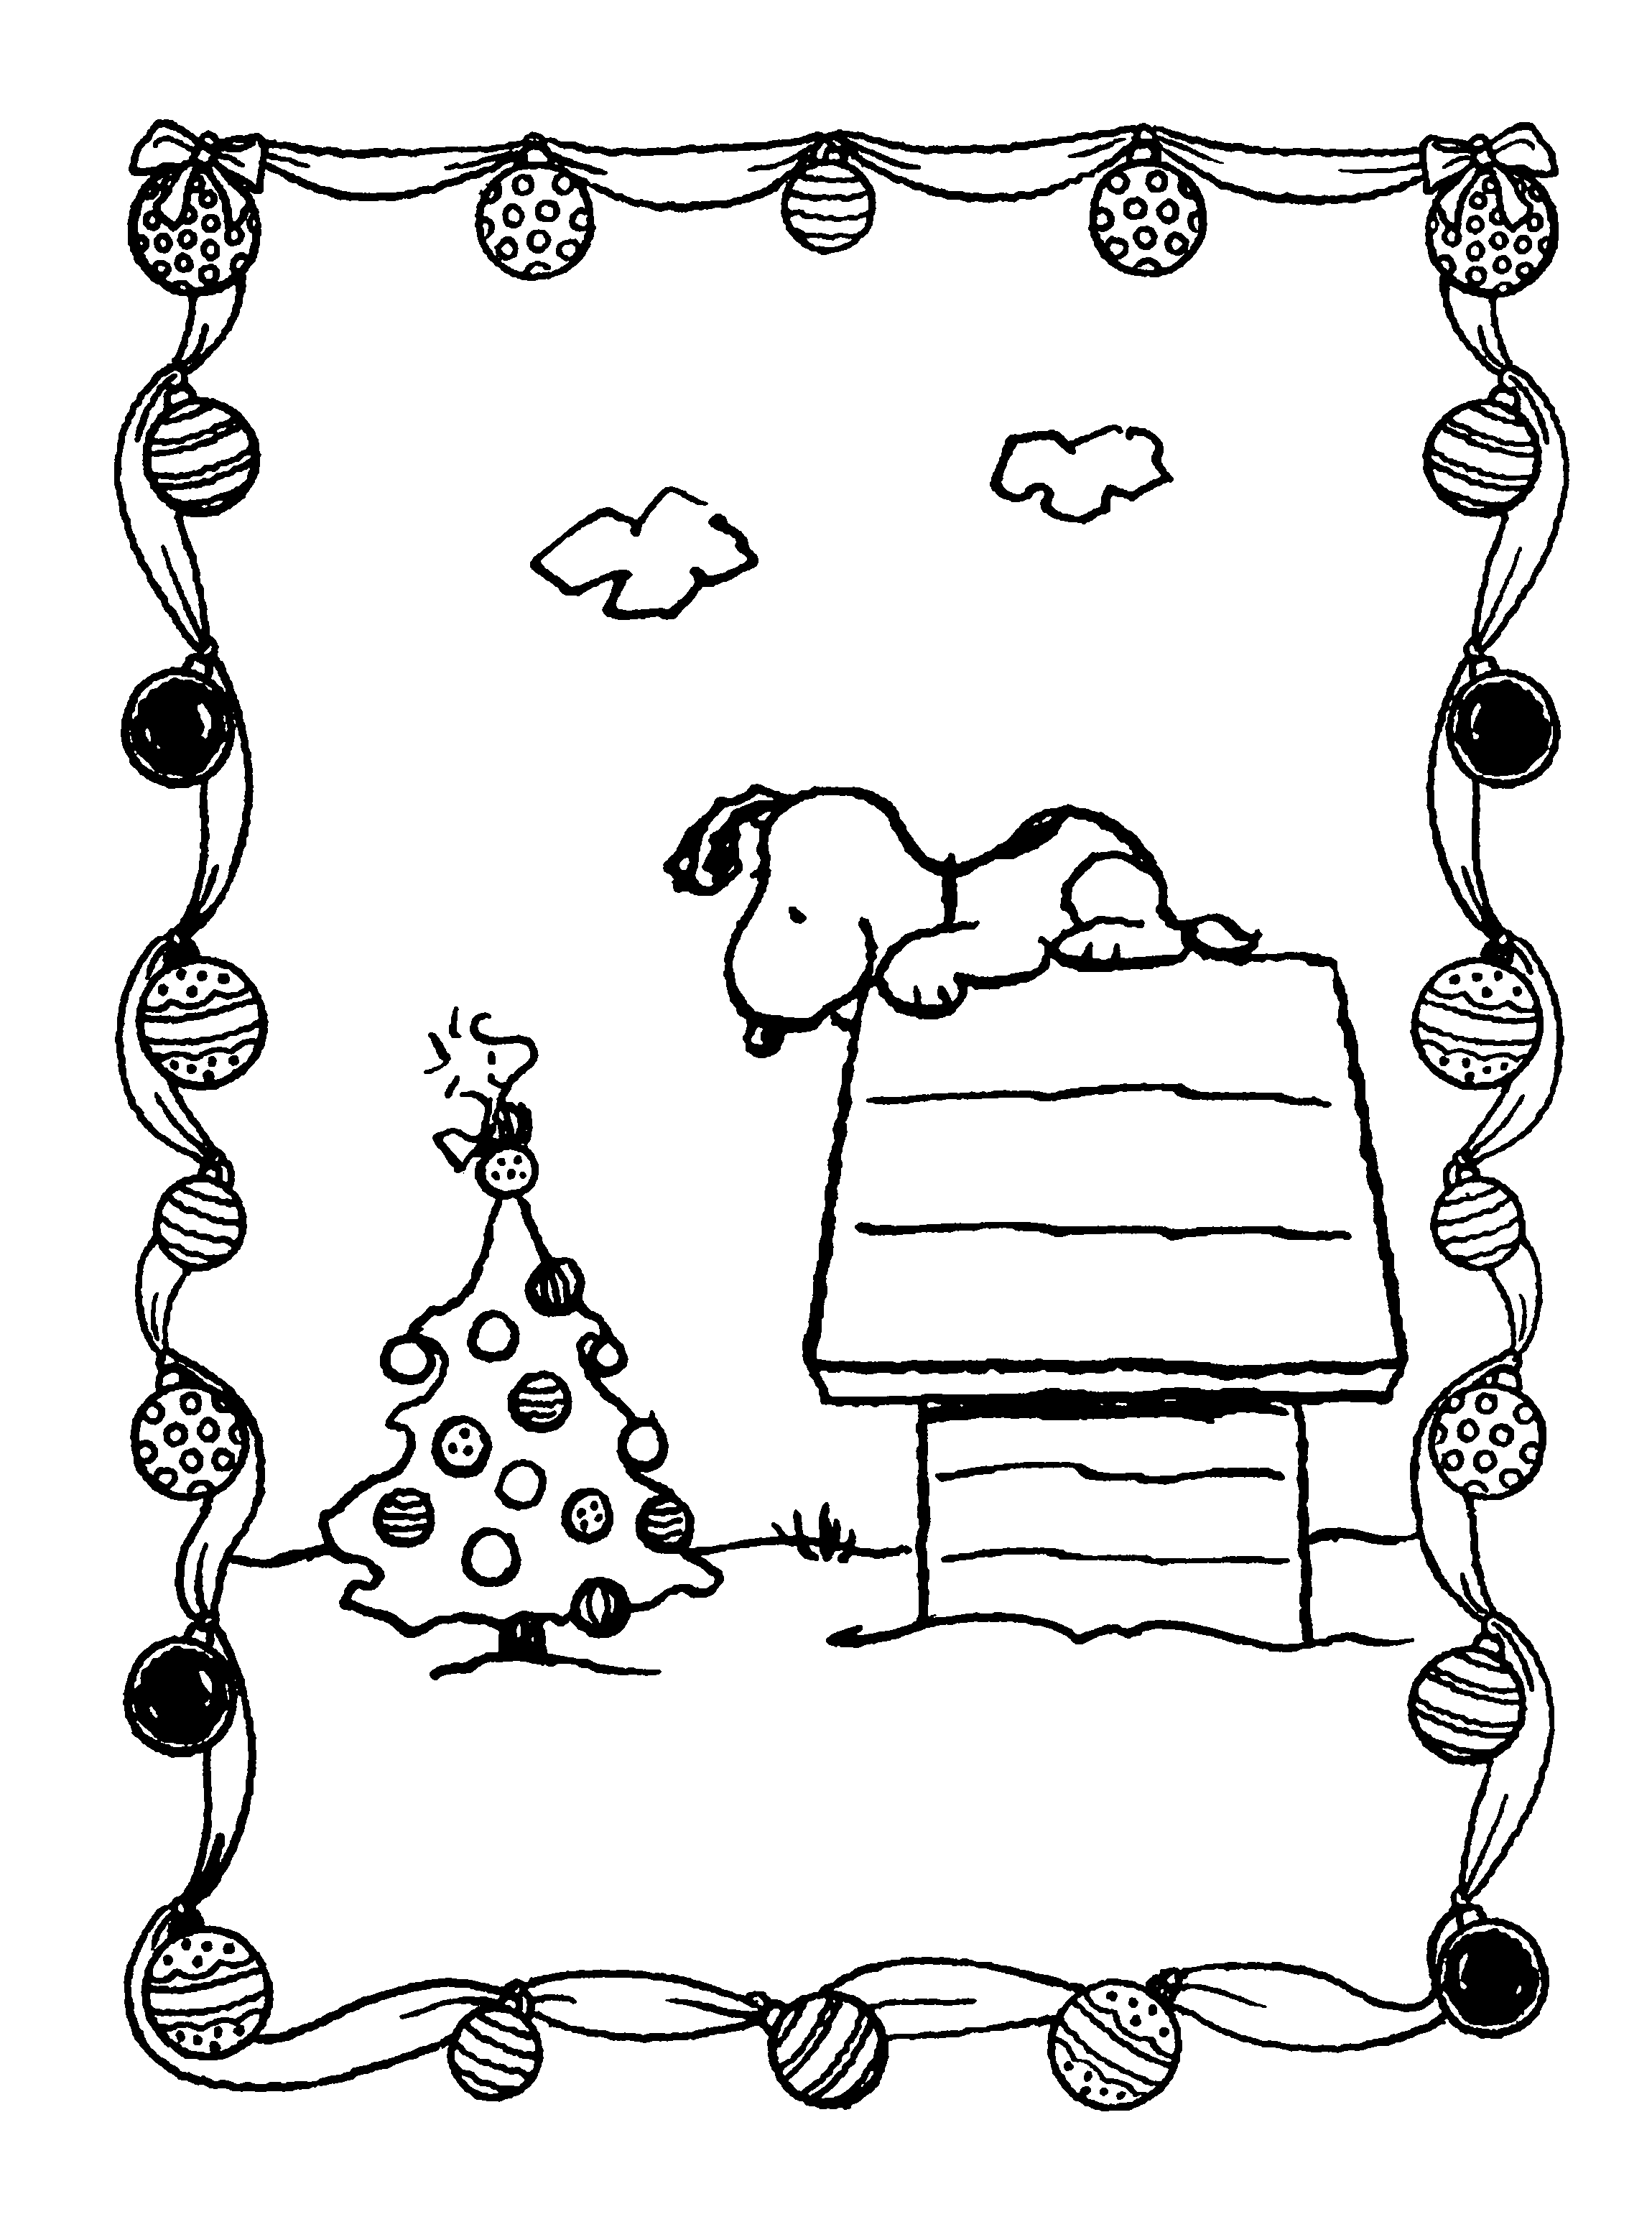 peanuts christmas coloring pages Peanuts Xmas Coloring and Activity Book | Charles M. Schulz  peanuts christmas coloring pages